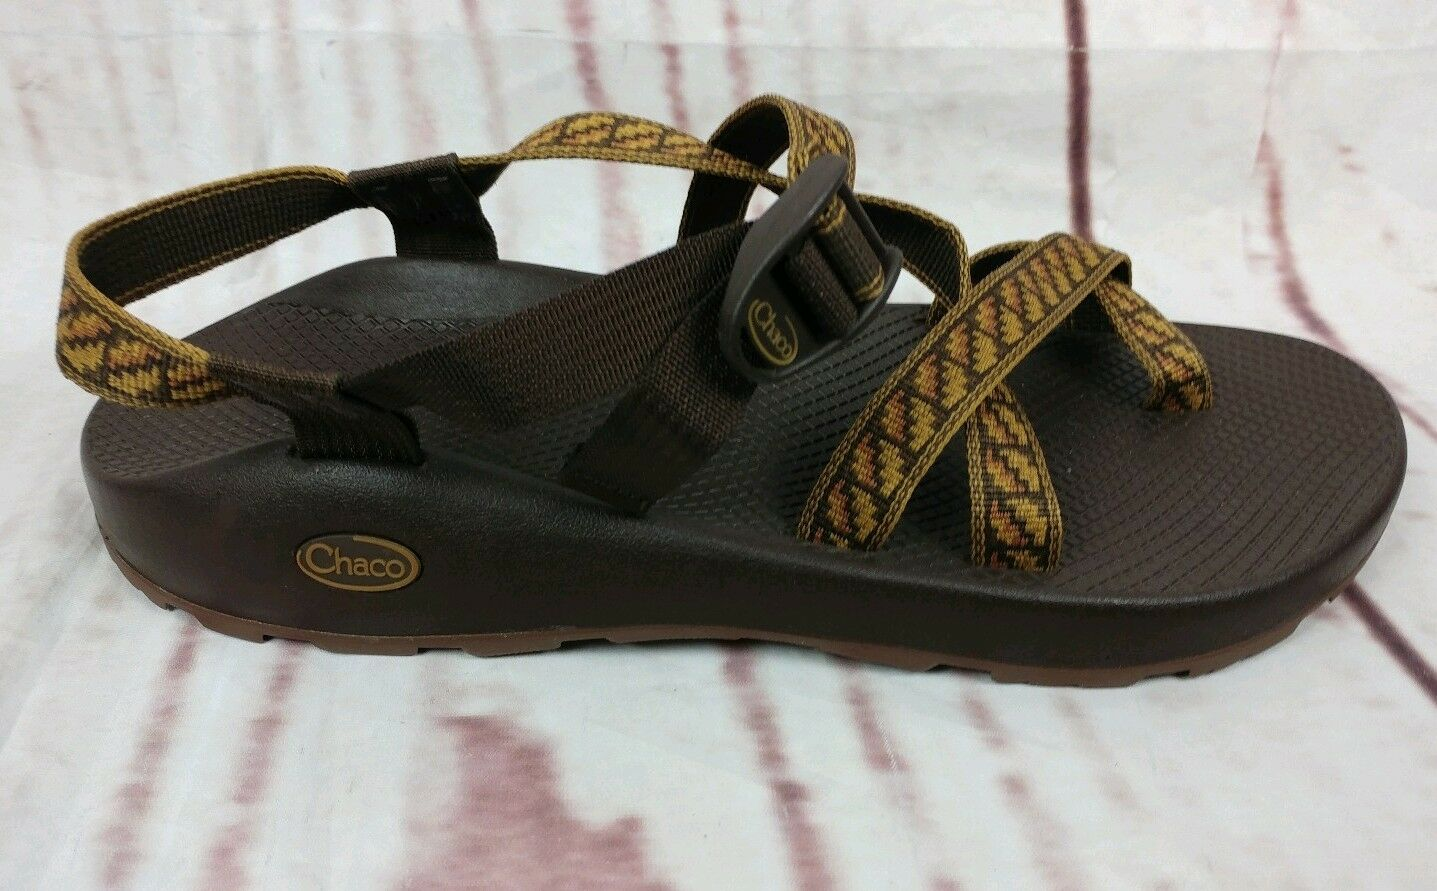 Mens Chaco Sandals Sandals Sandals US Dimensione 14 Marronee Tribal Trail Hiking Water Sport 0c669f